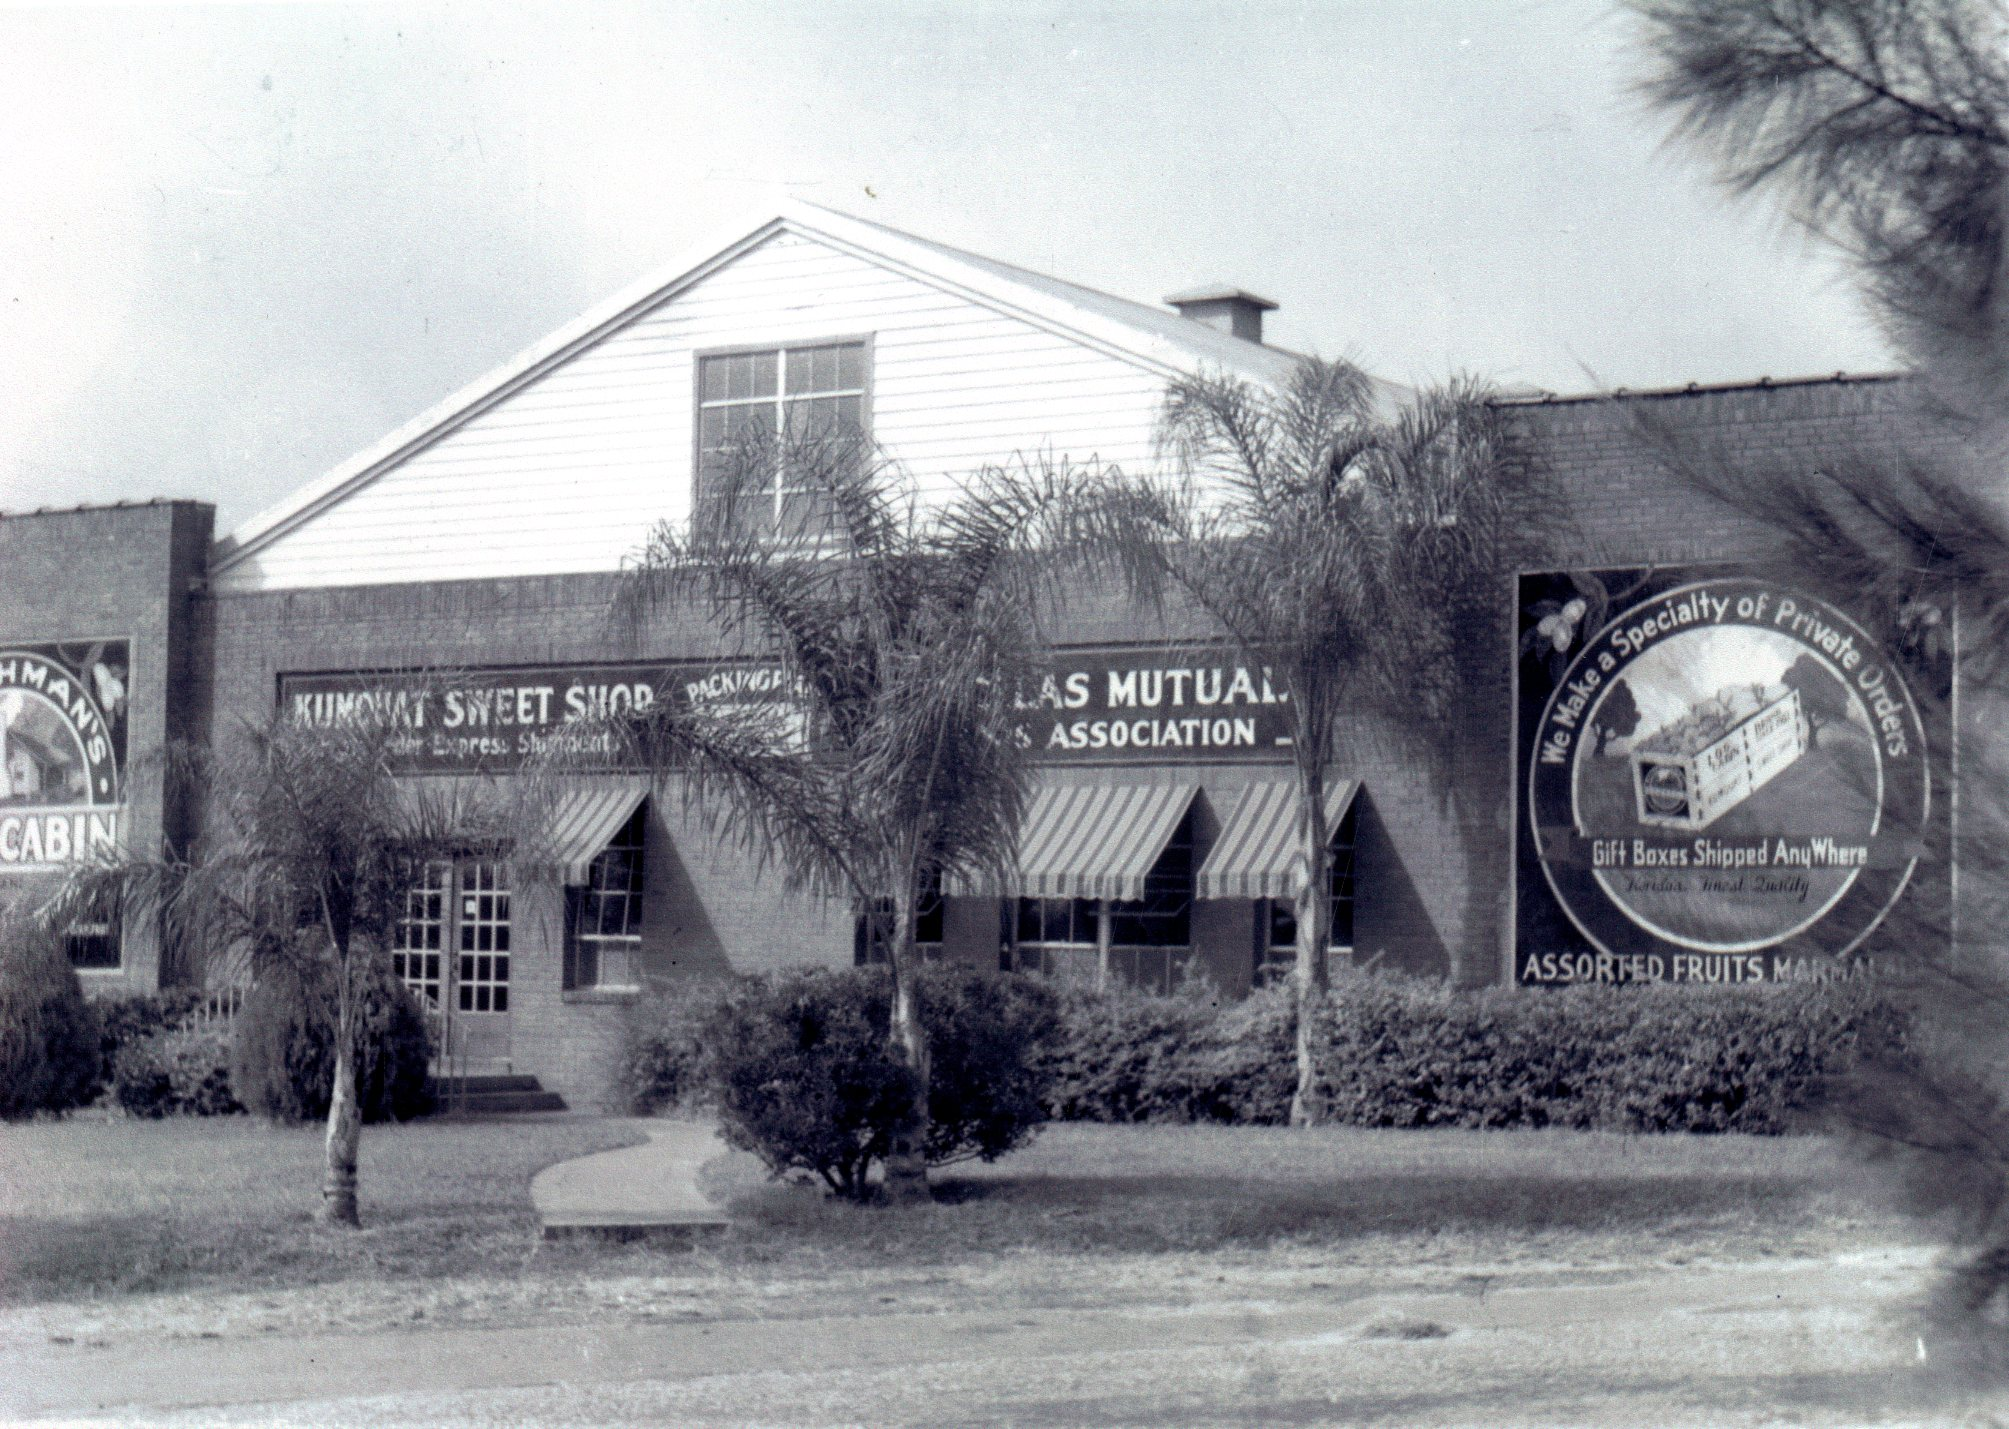 First Coachman citrus packing house, Clearwater, Florida, pre-1950.